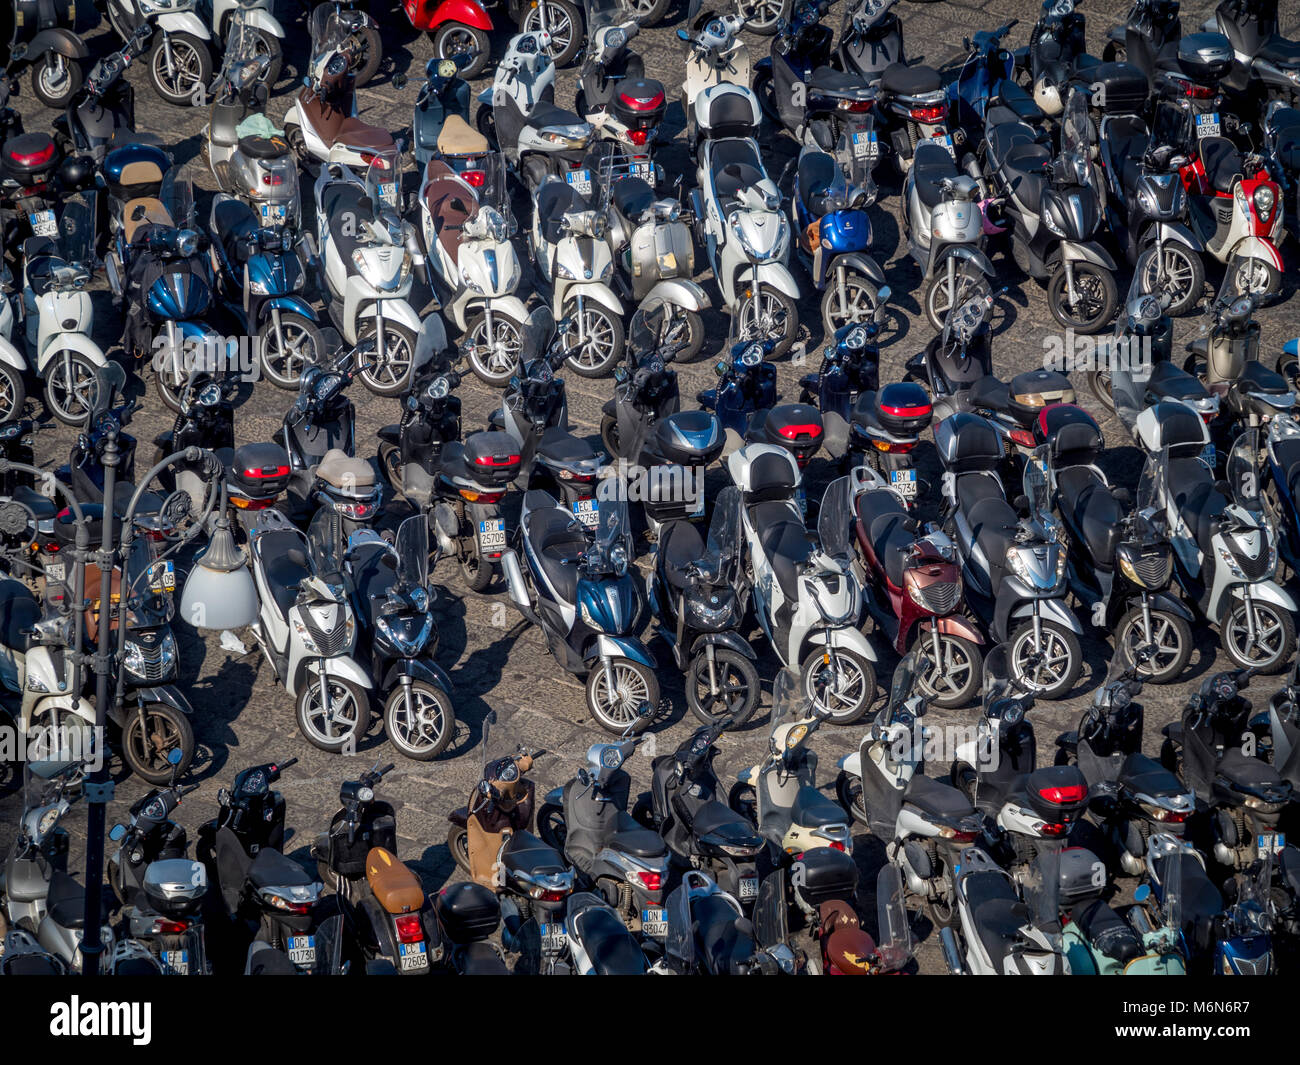 Motorbikes and mopeds in car park seen from above - Stock Image